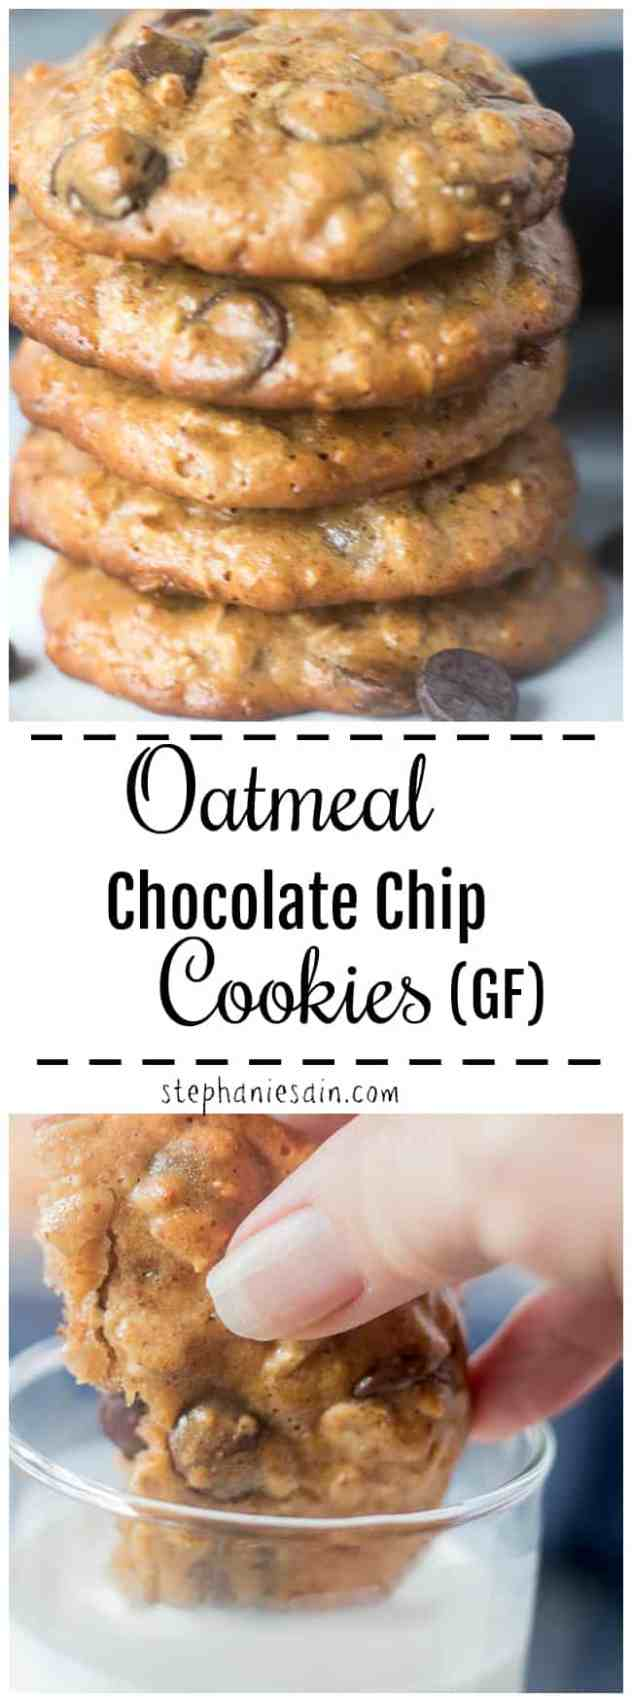 These Flourless Chocolate Chip cookies are loaded with oatmeal, dark chocolate chips and almond butter for a healthier snack or dessert. Great for lunch boxes or snacks. Chewy, slightly crunchy and made without any added refined sugars. Gluten Free.